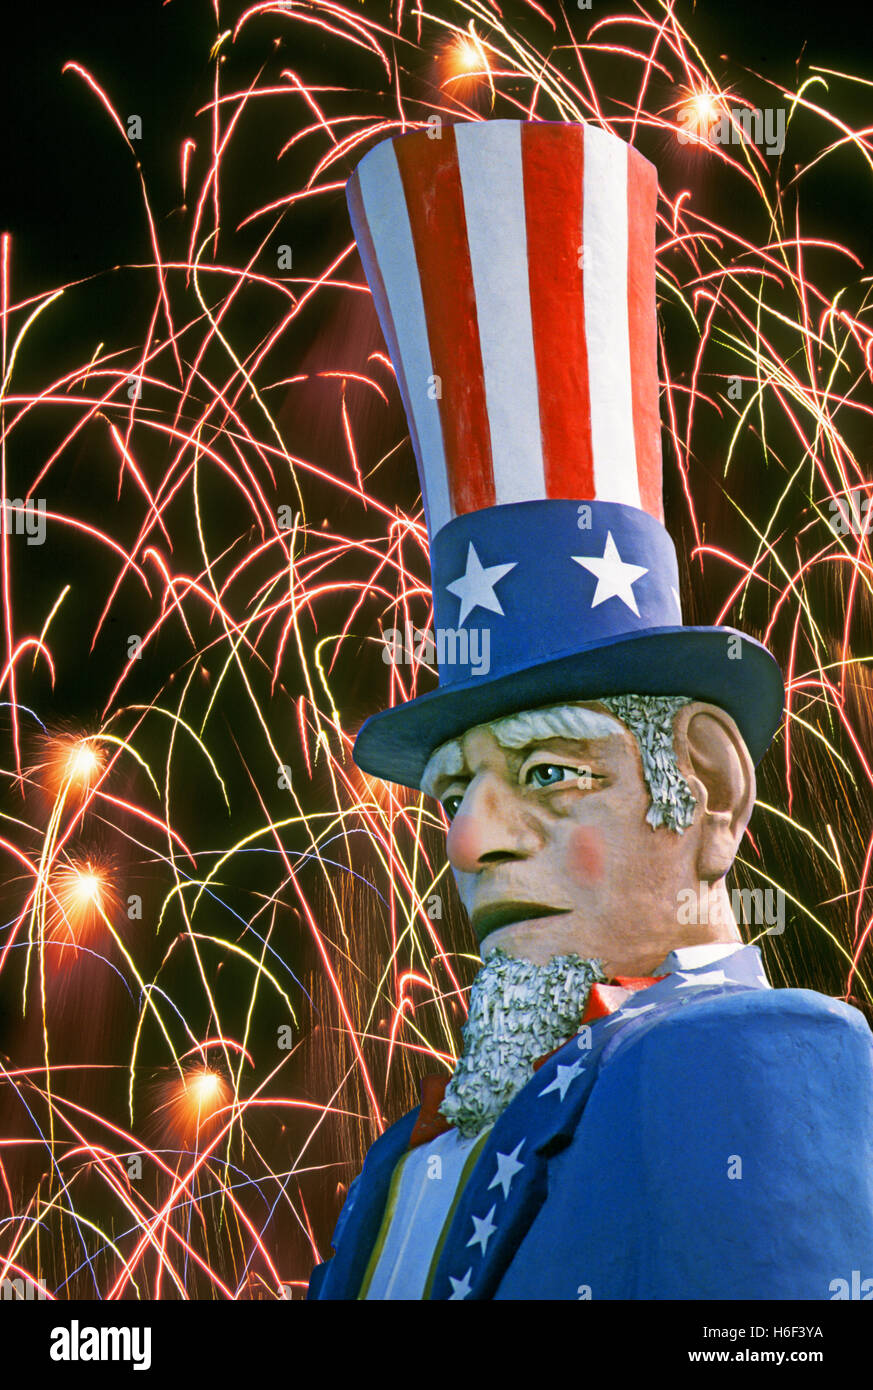 July 4, 2016: A portrait of uncle Sam during a fireworks show on the Fourth of July. Stock Photo